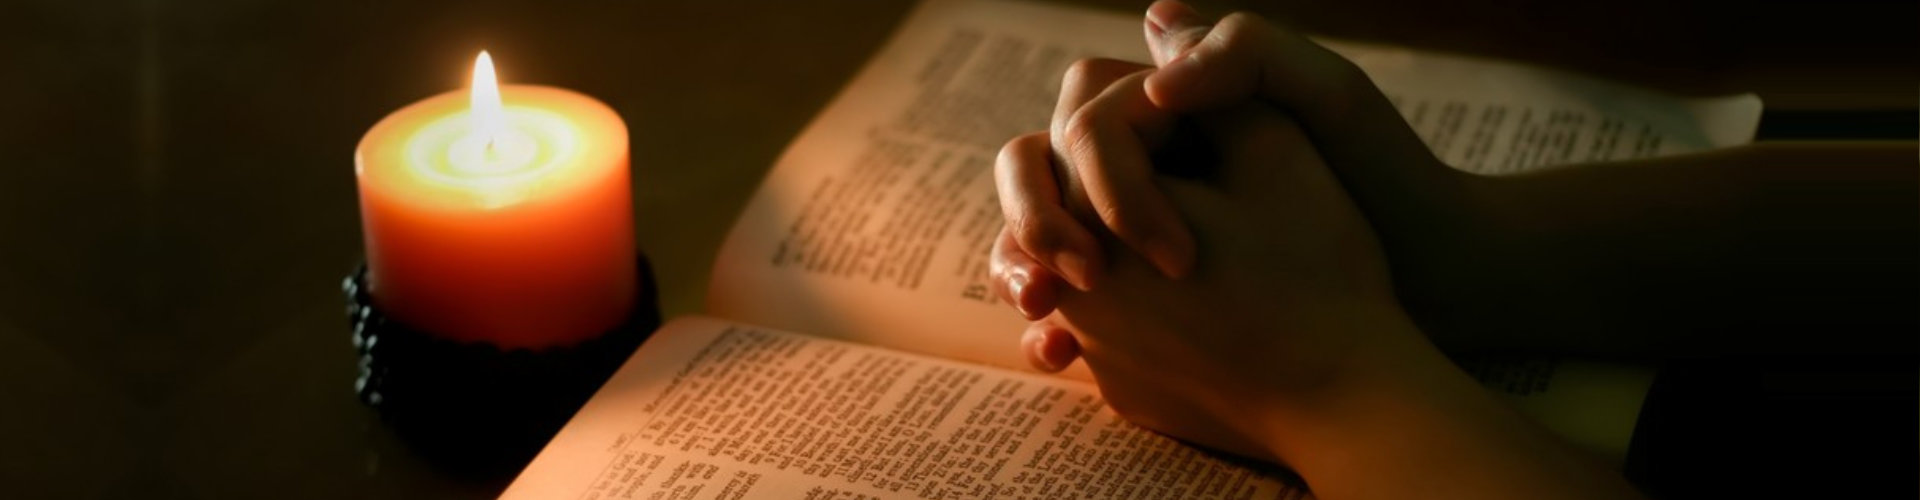 candle, bible, hands